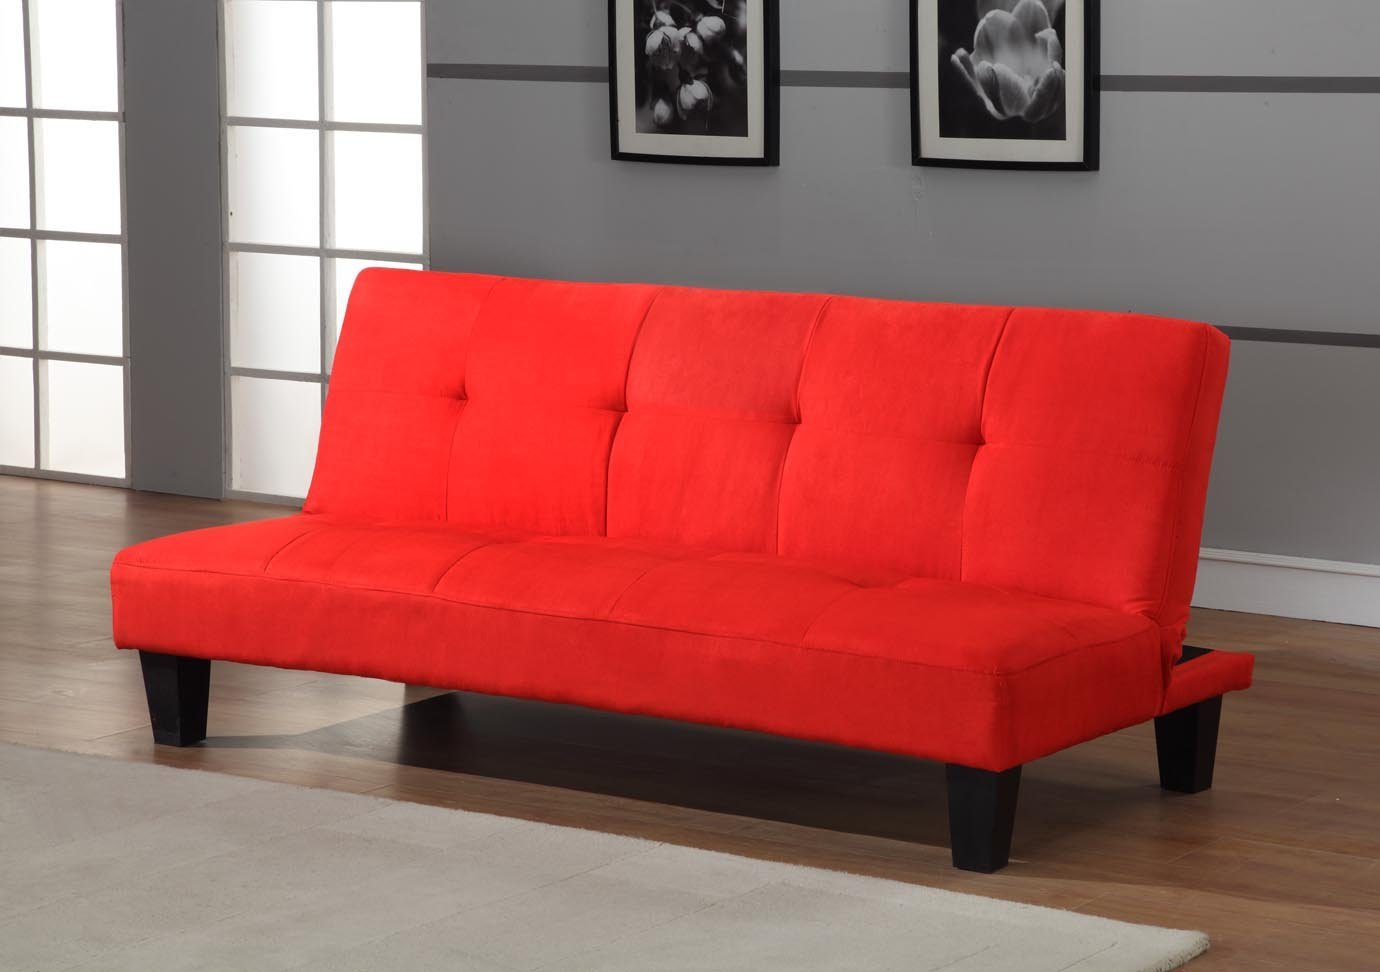 Image of: Red Futon Bed Designs Target